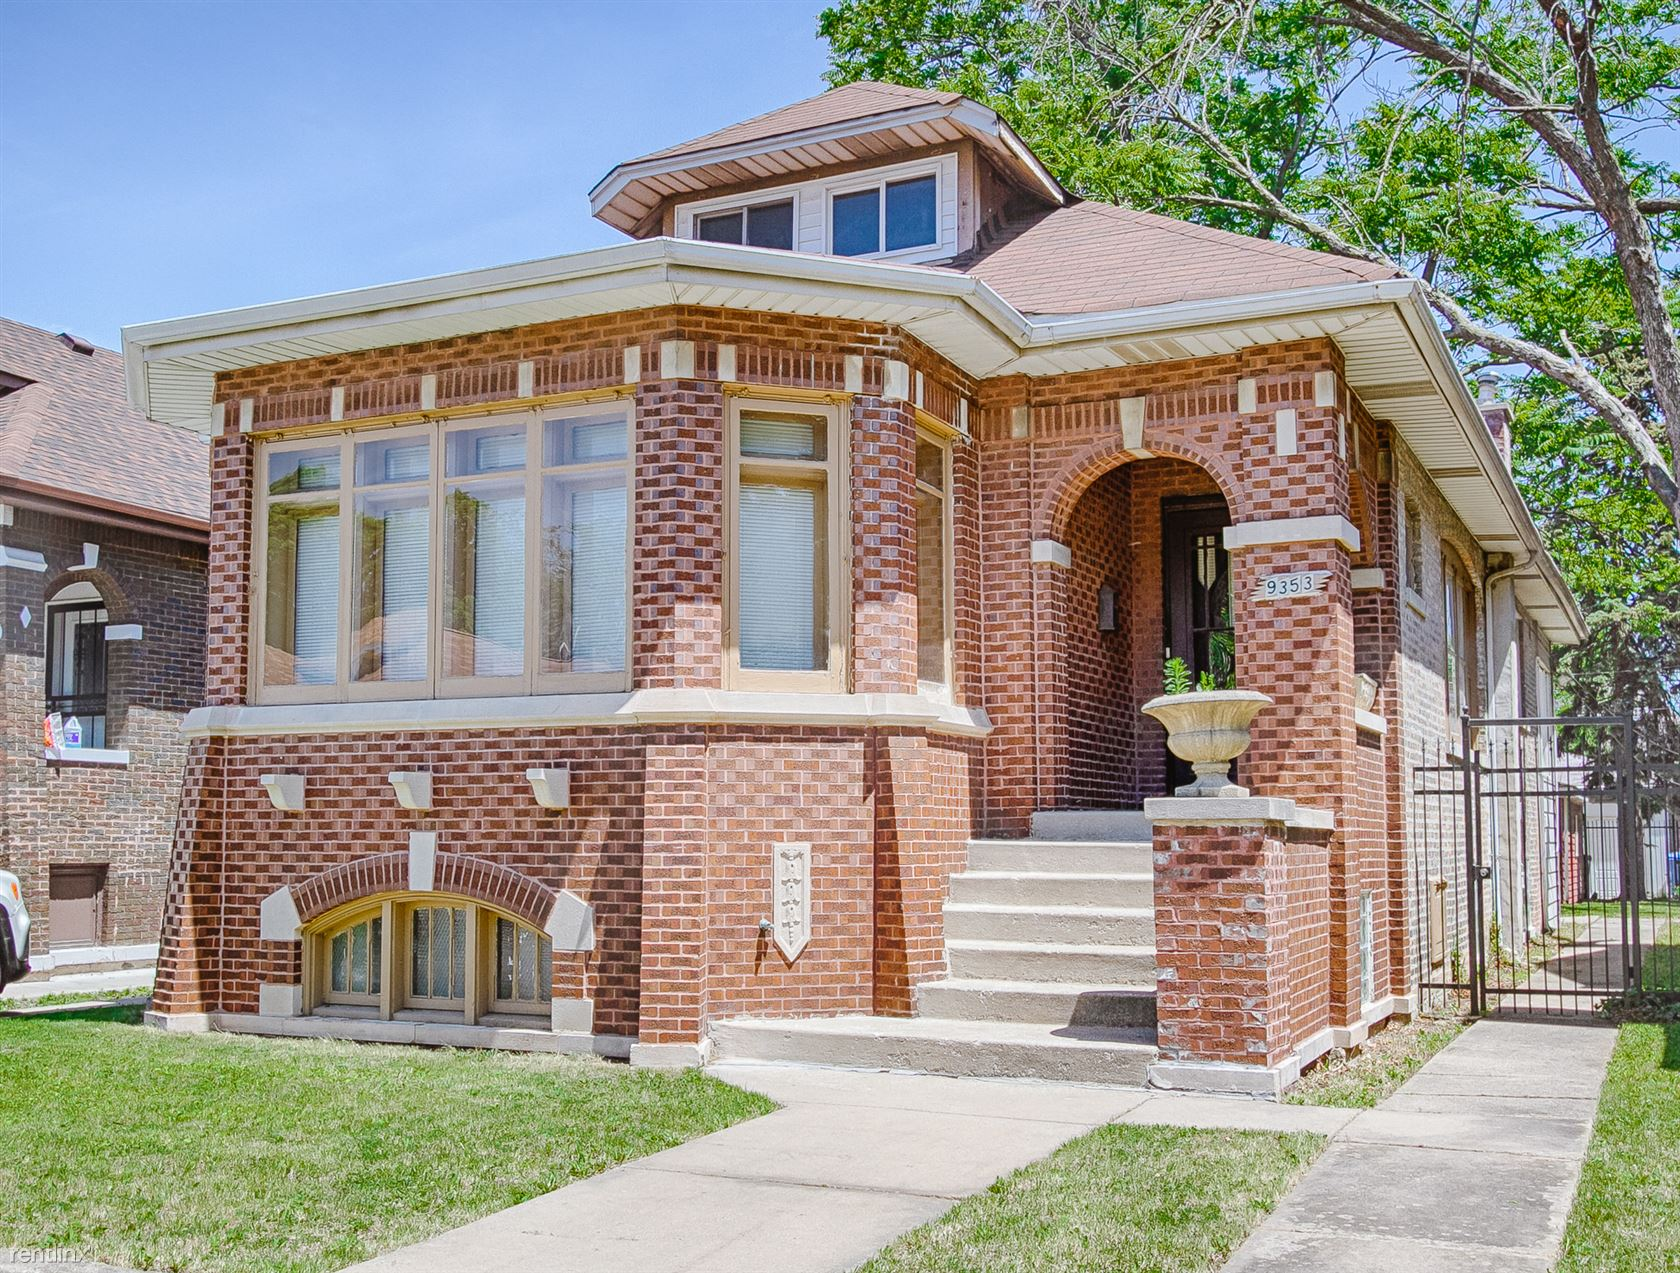 9353 South Loomis Street, Chicago, IL - 1,600 USD/ month